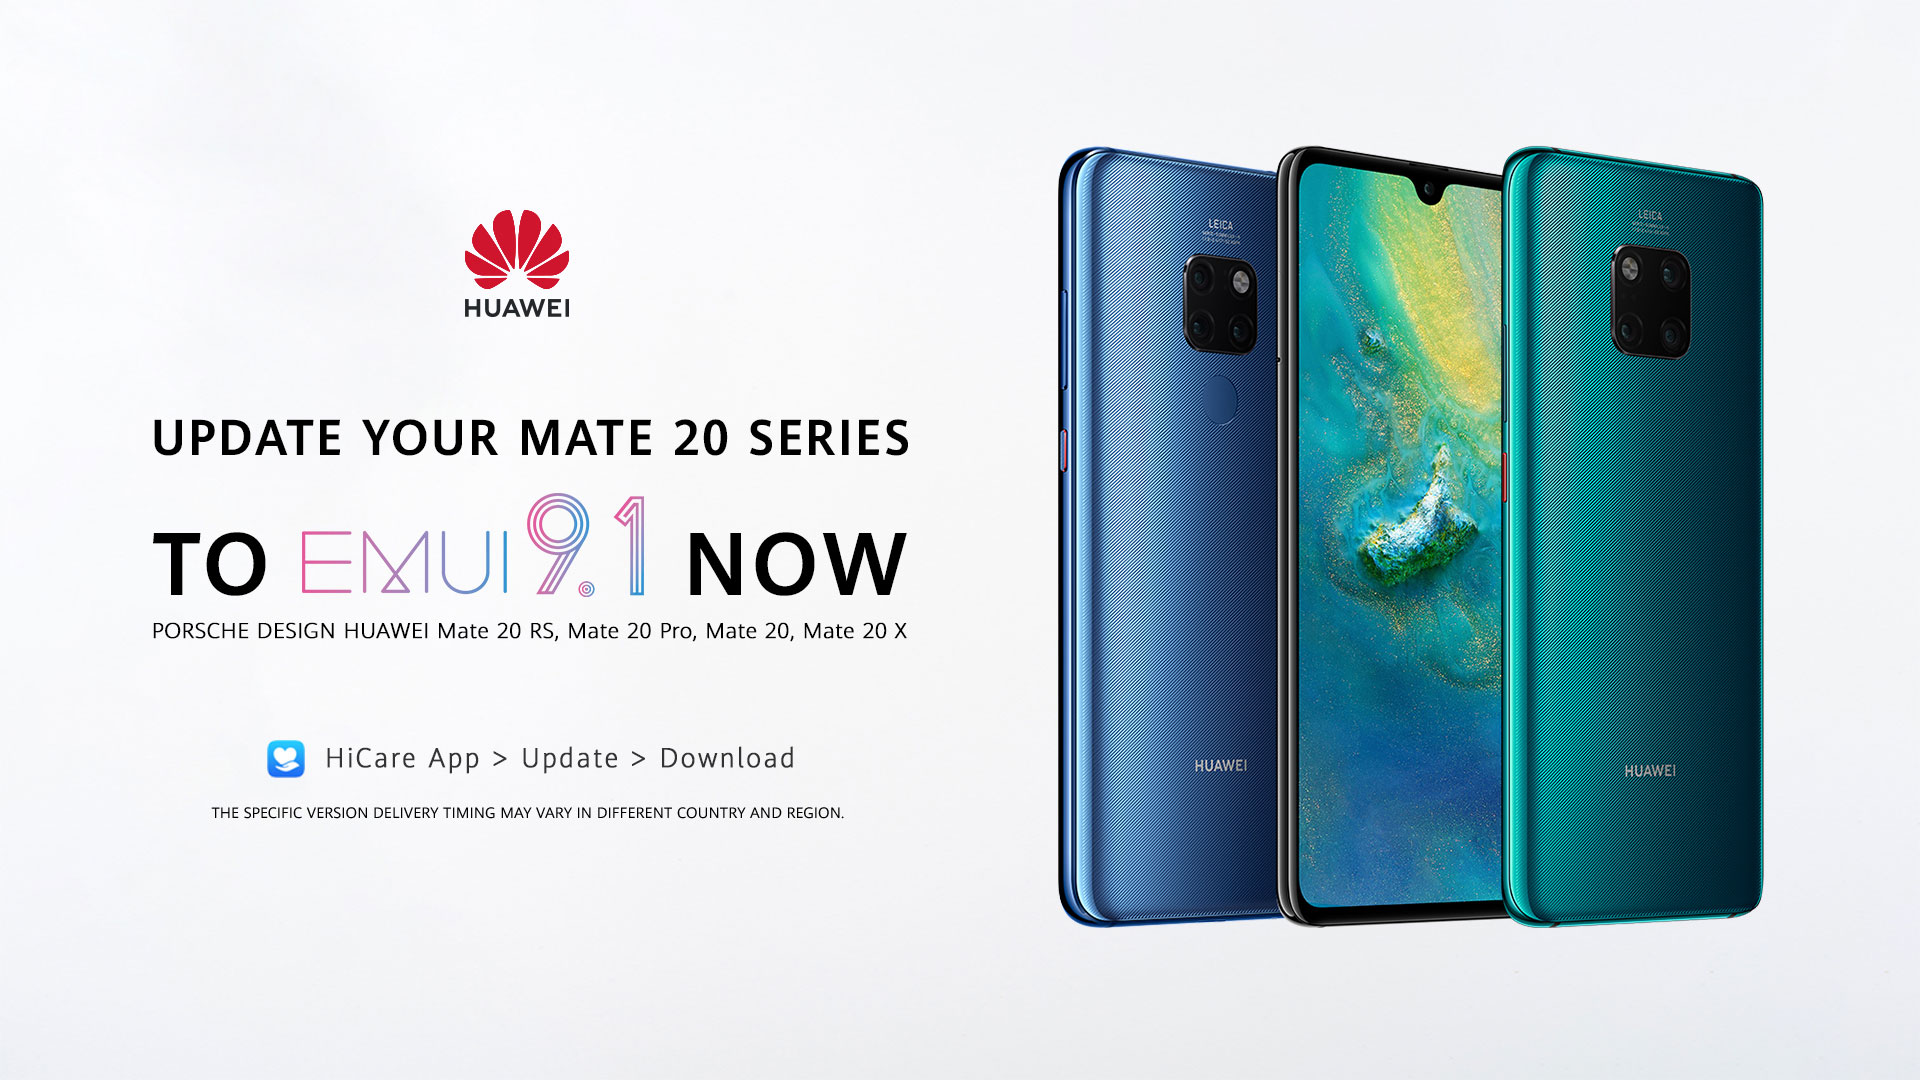 EMUI 9.1 released for HUAWEI Mate 20 Series, to be available for other devices soon